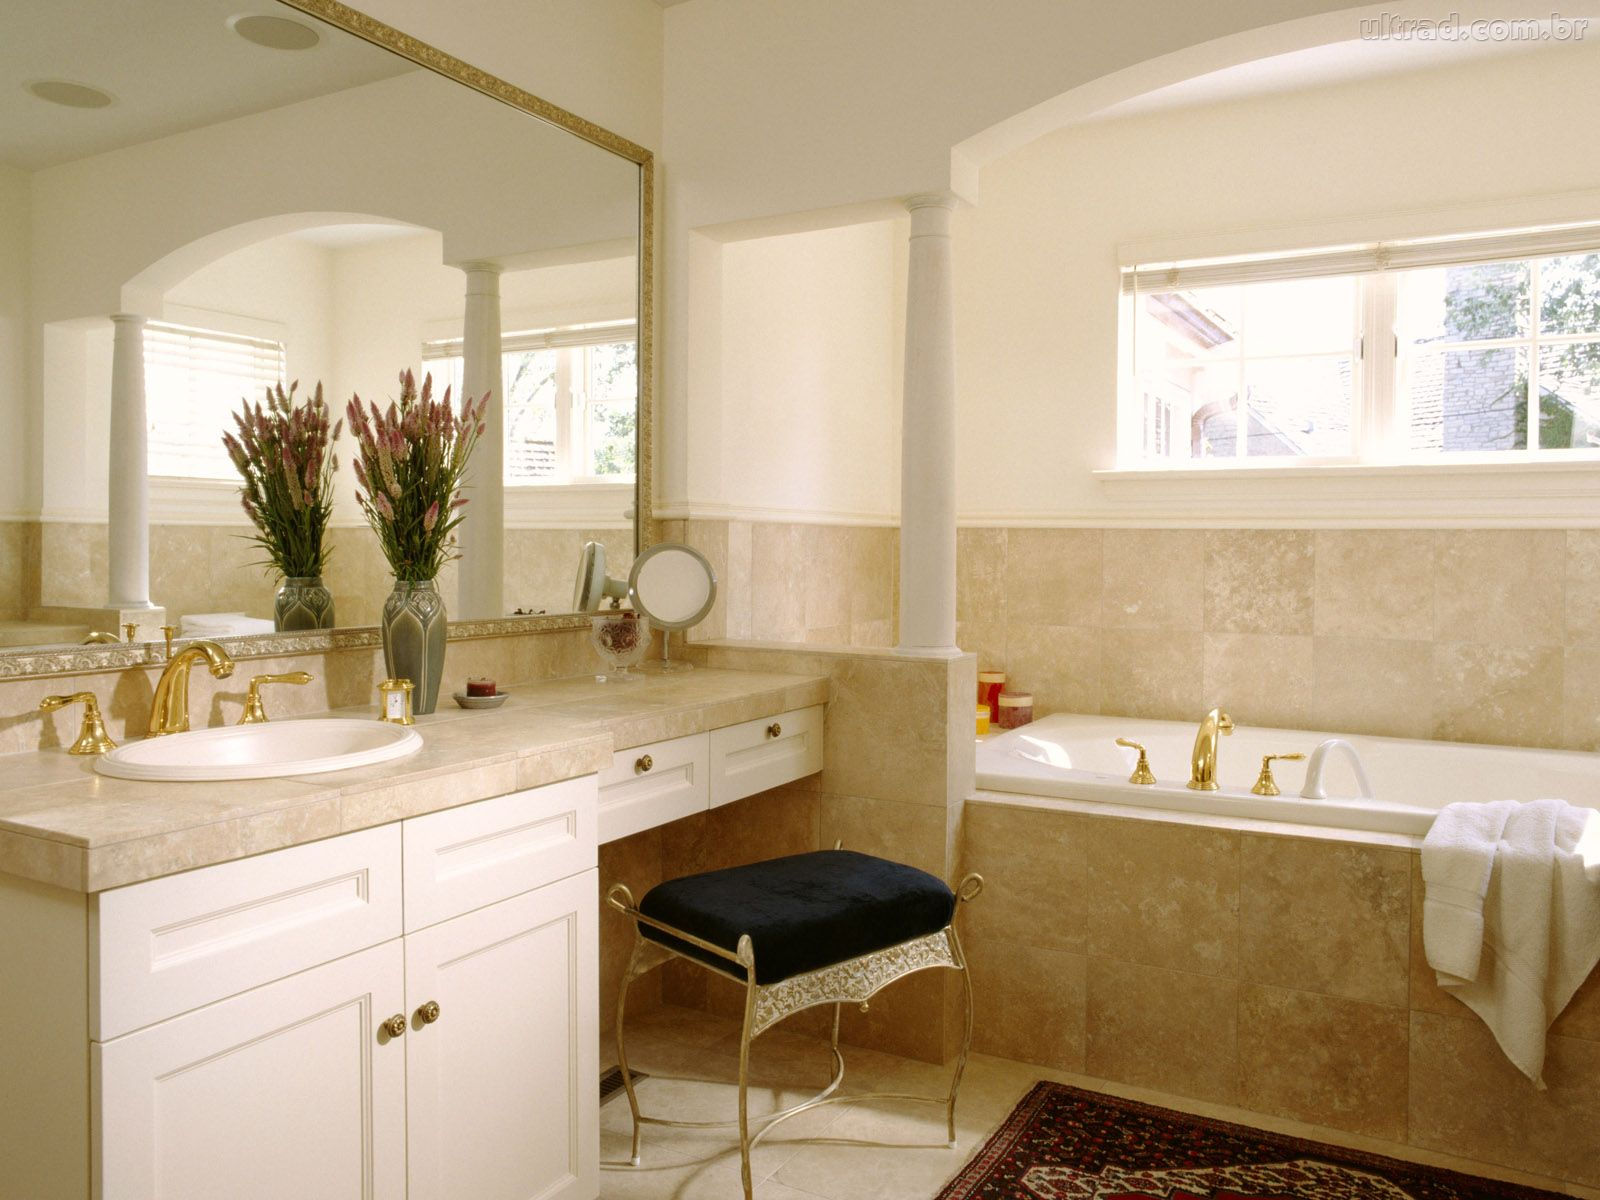 Construindo minha casa clean banheiros e lavabos for Bathrooms for small areas